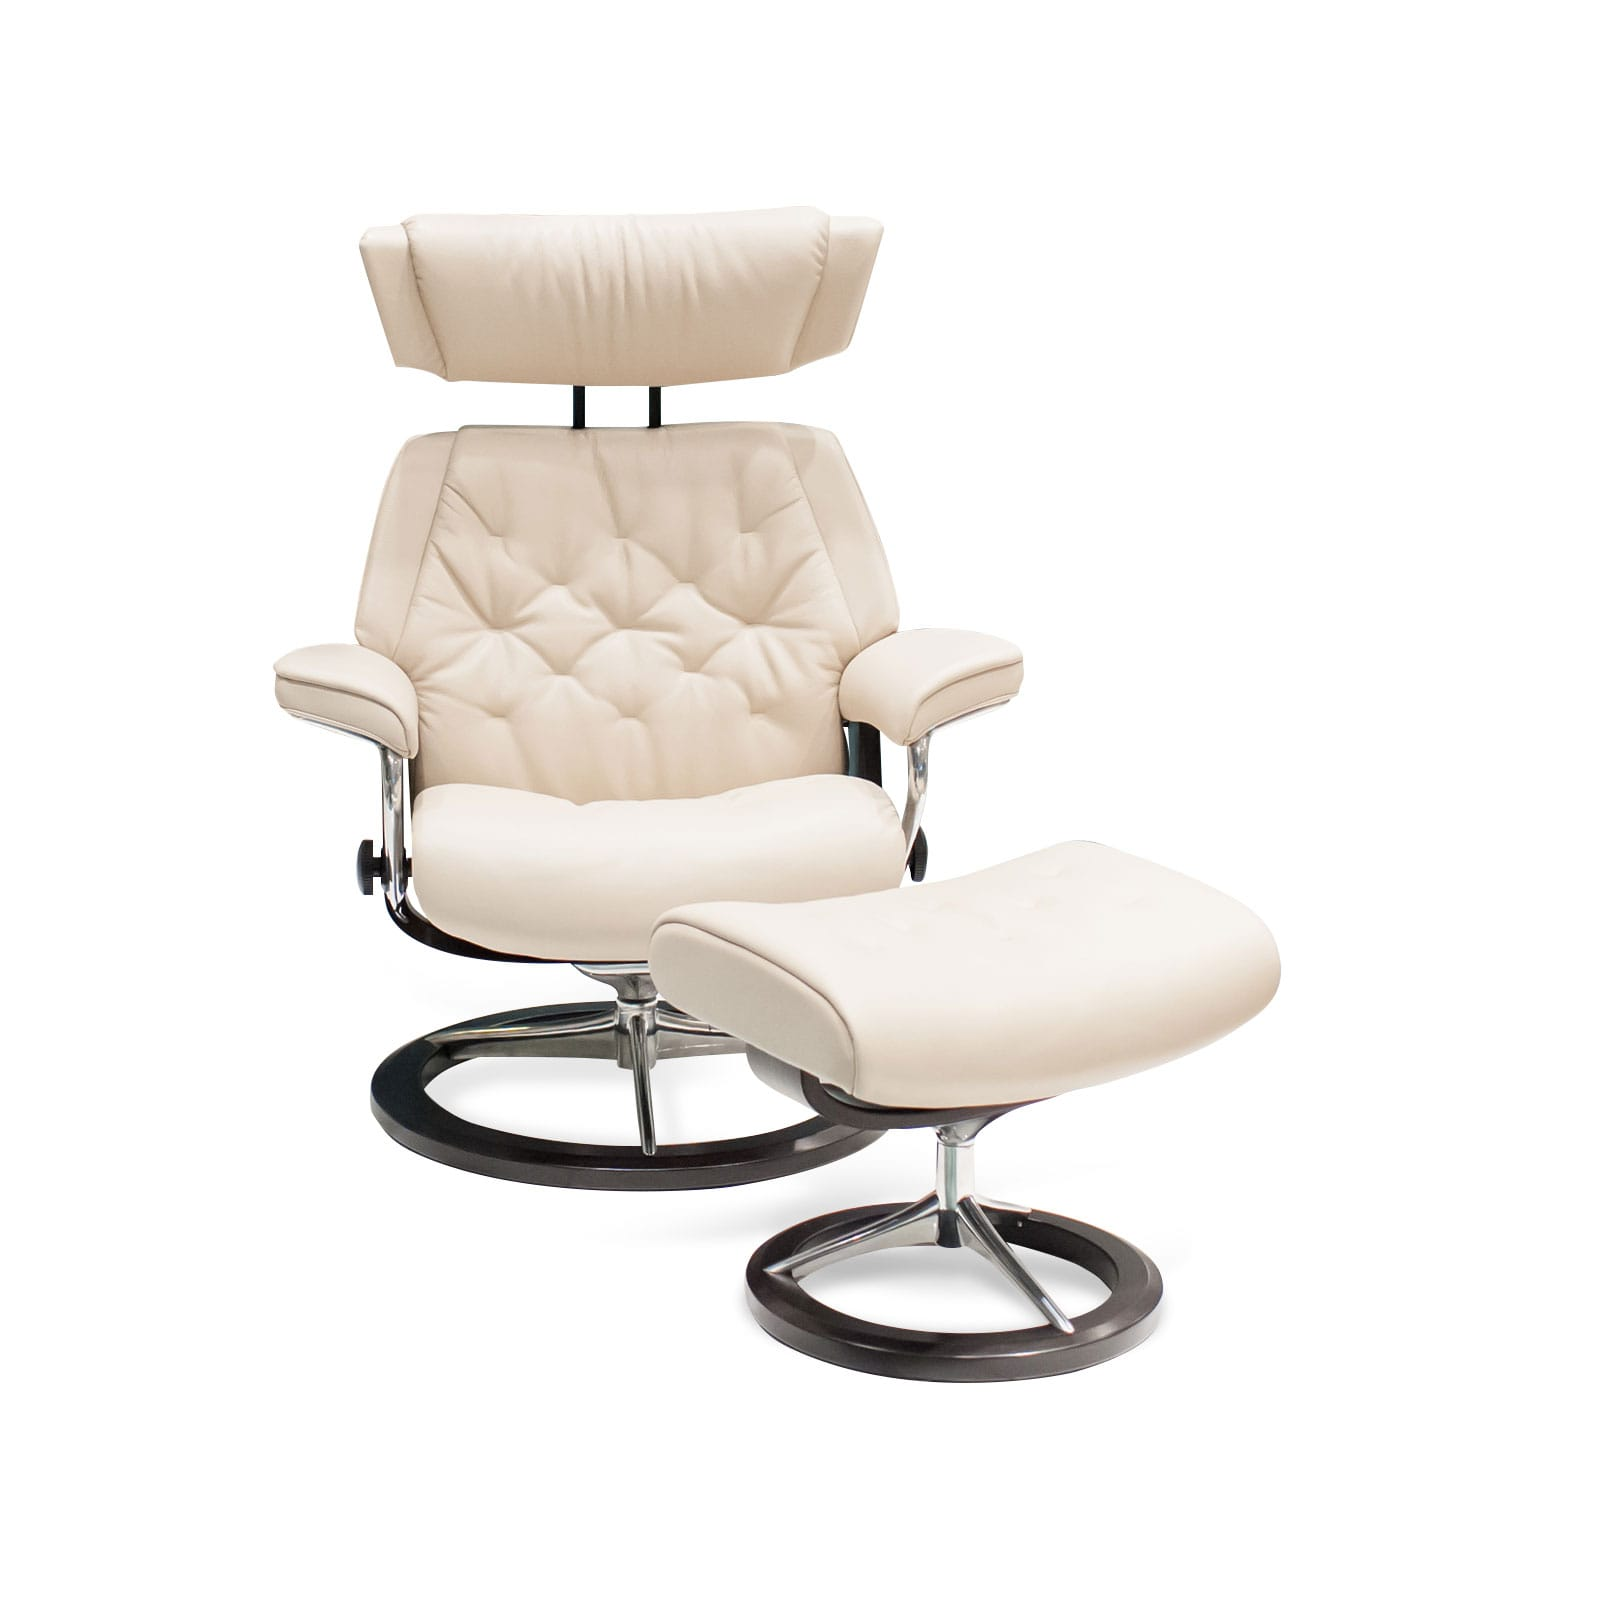 Stressless Sessel Skyline Stressless Sessel Skyline Cori Fog Signature Mit Hocker